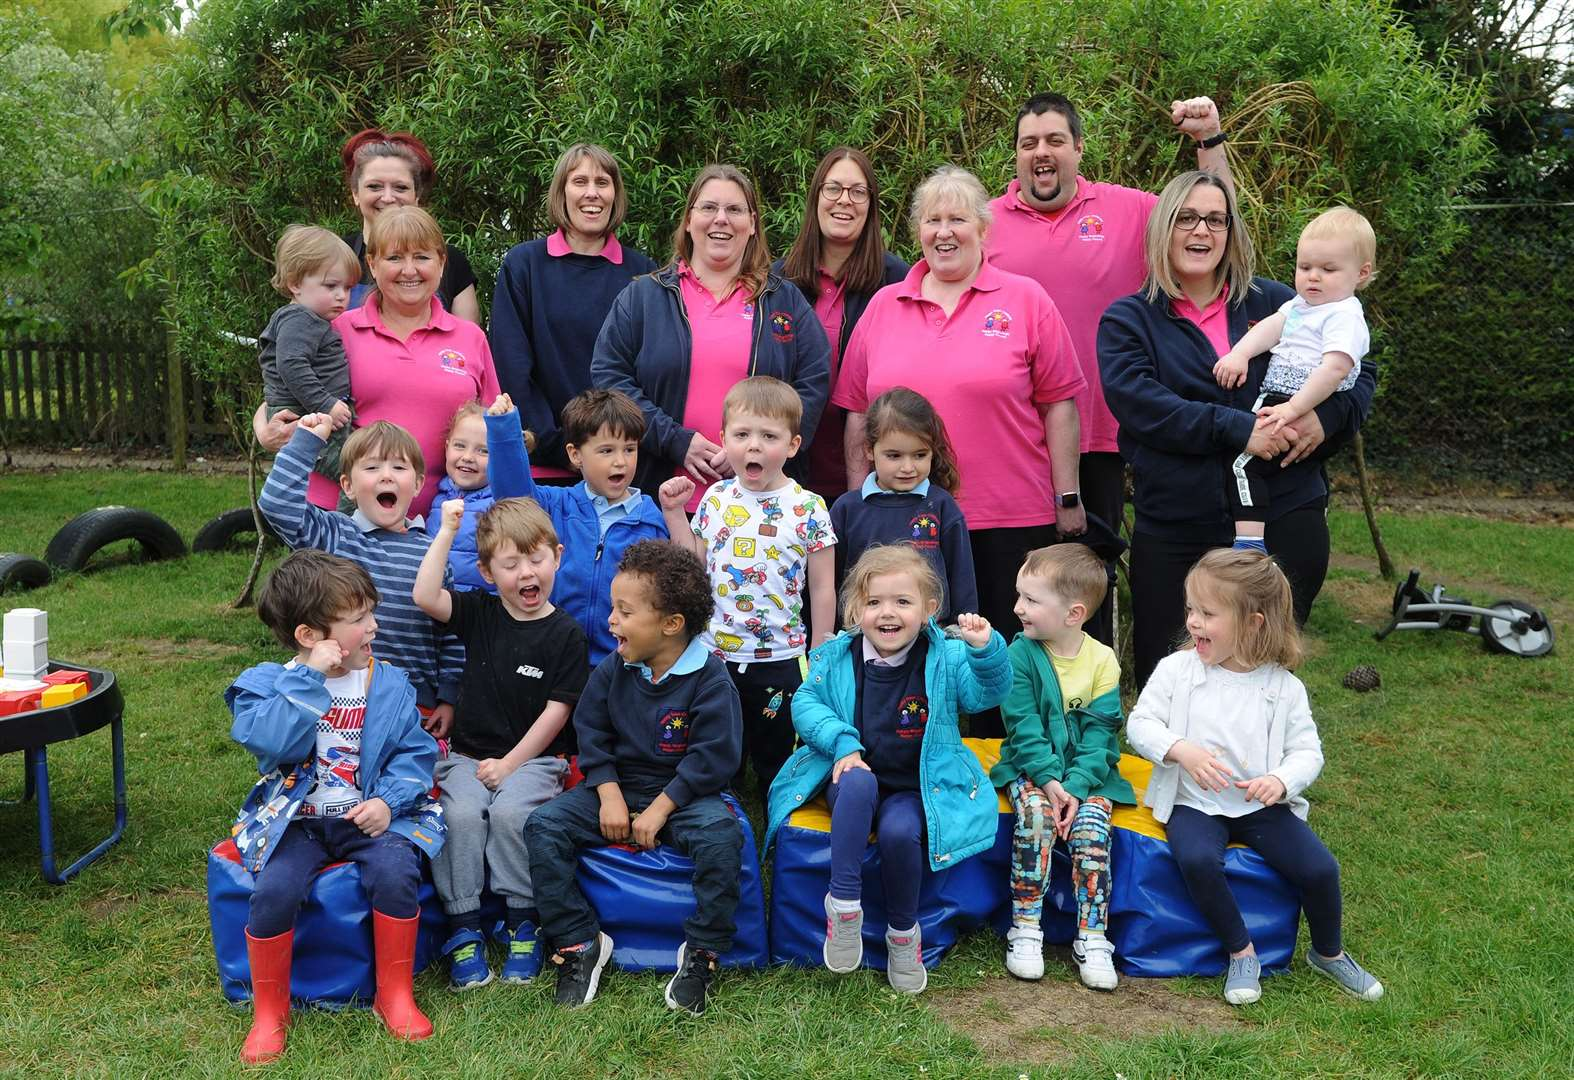 Childcare setting provides 'fun and motivation'